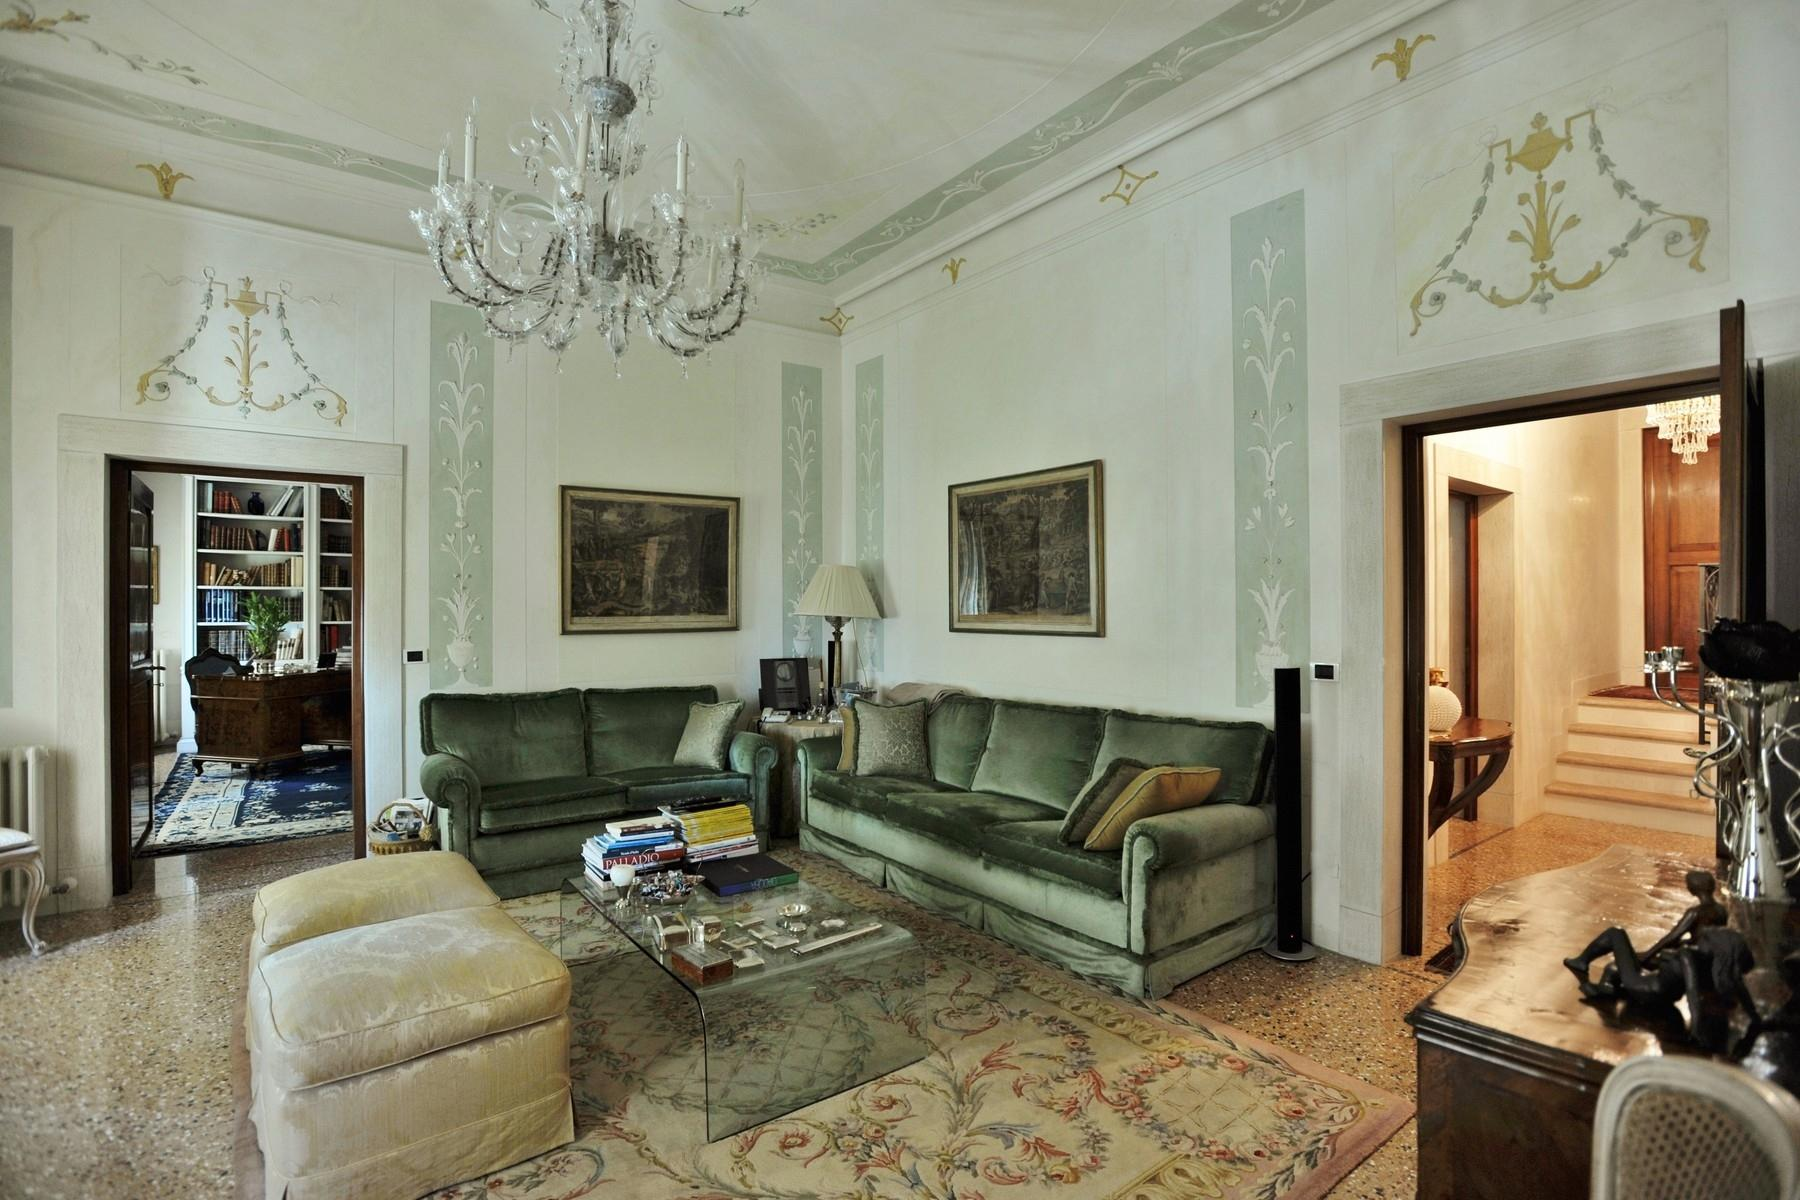 Classic Villa Veneta in the centre of Asolo (TV) - 5